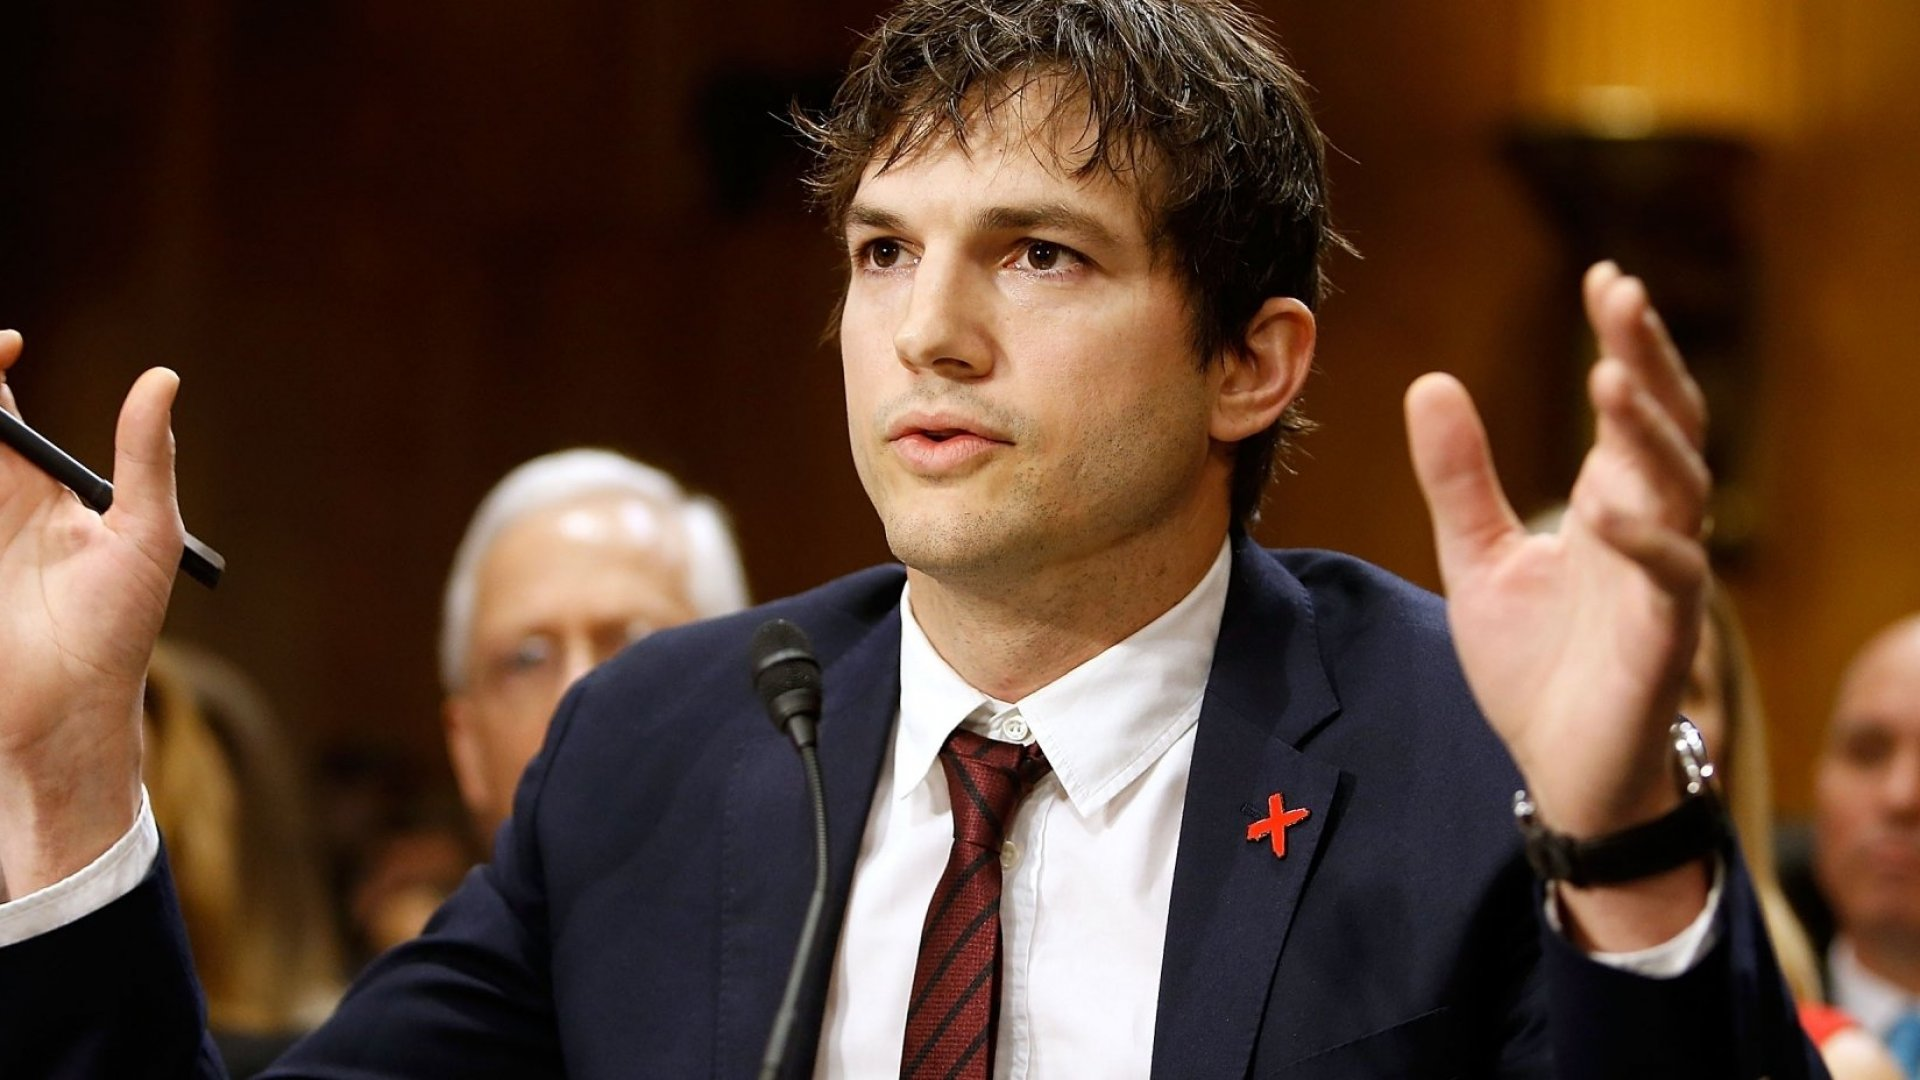 Ashton Kutcher Says He Has Helped Find 6,000 Child Sex Abuse Victims